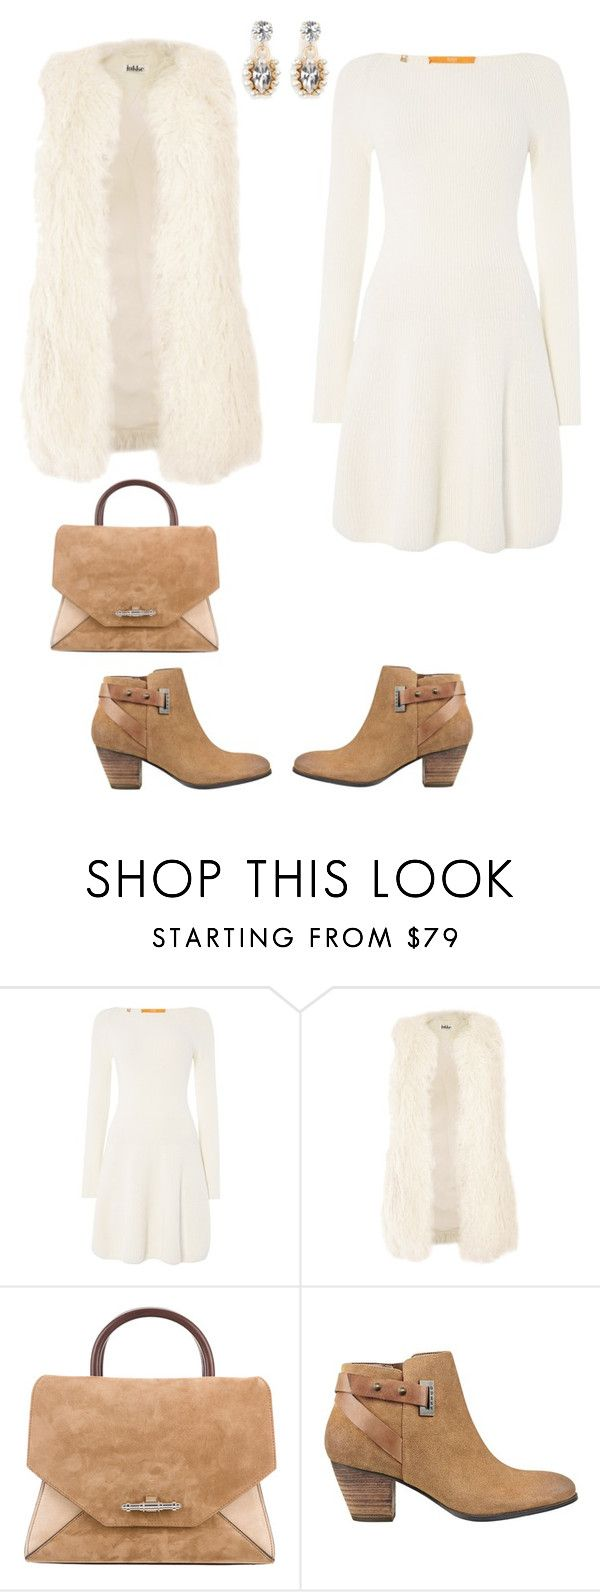 """Untitled #751"" by sajairaq ❤ liked on Polyvore featuring HUGO, Jakke, Givenchy, GUESS and Anton Heunis"